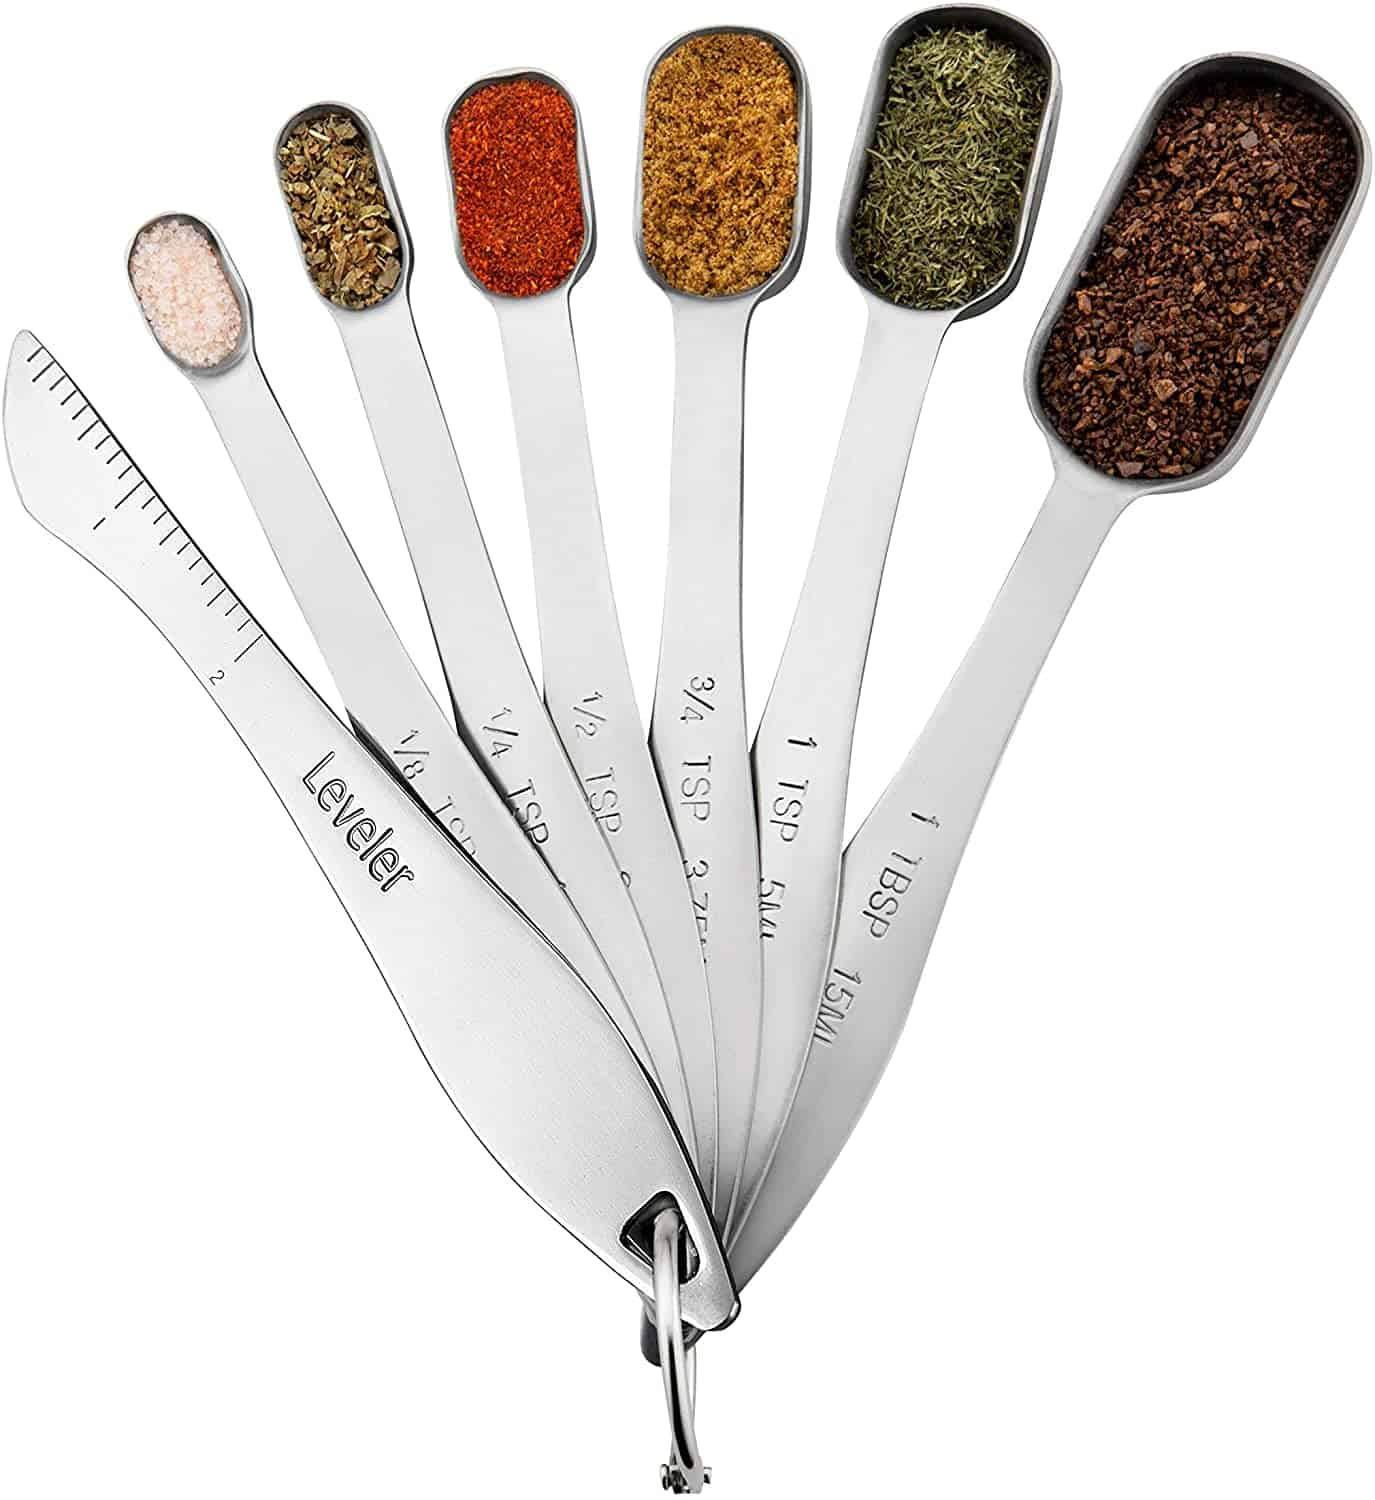 Image of measuring spoons